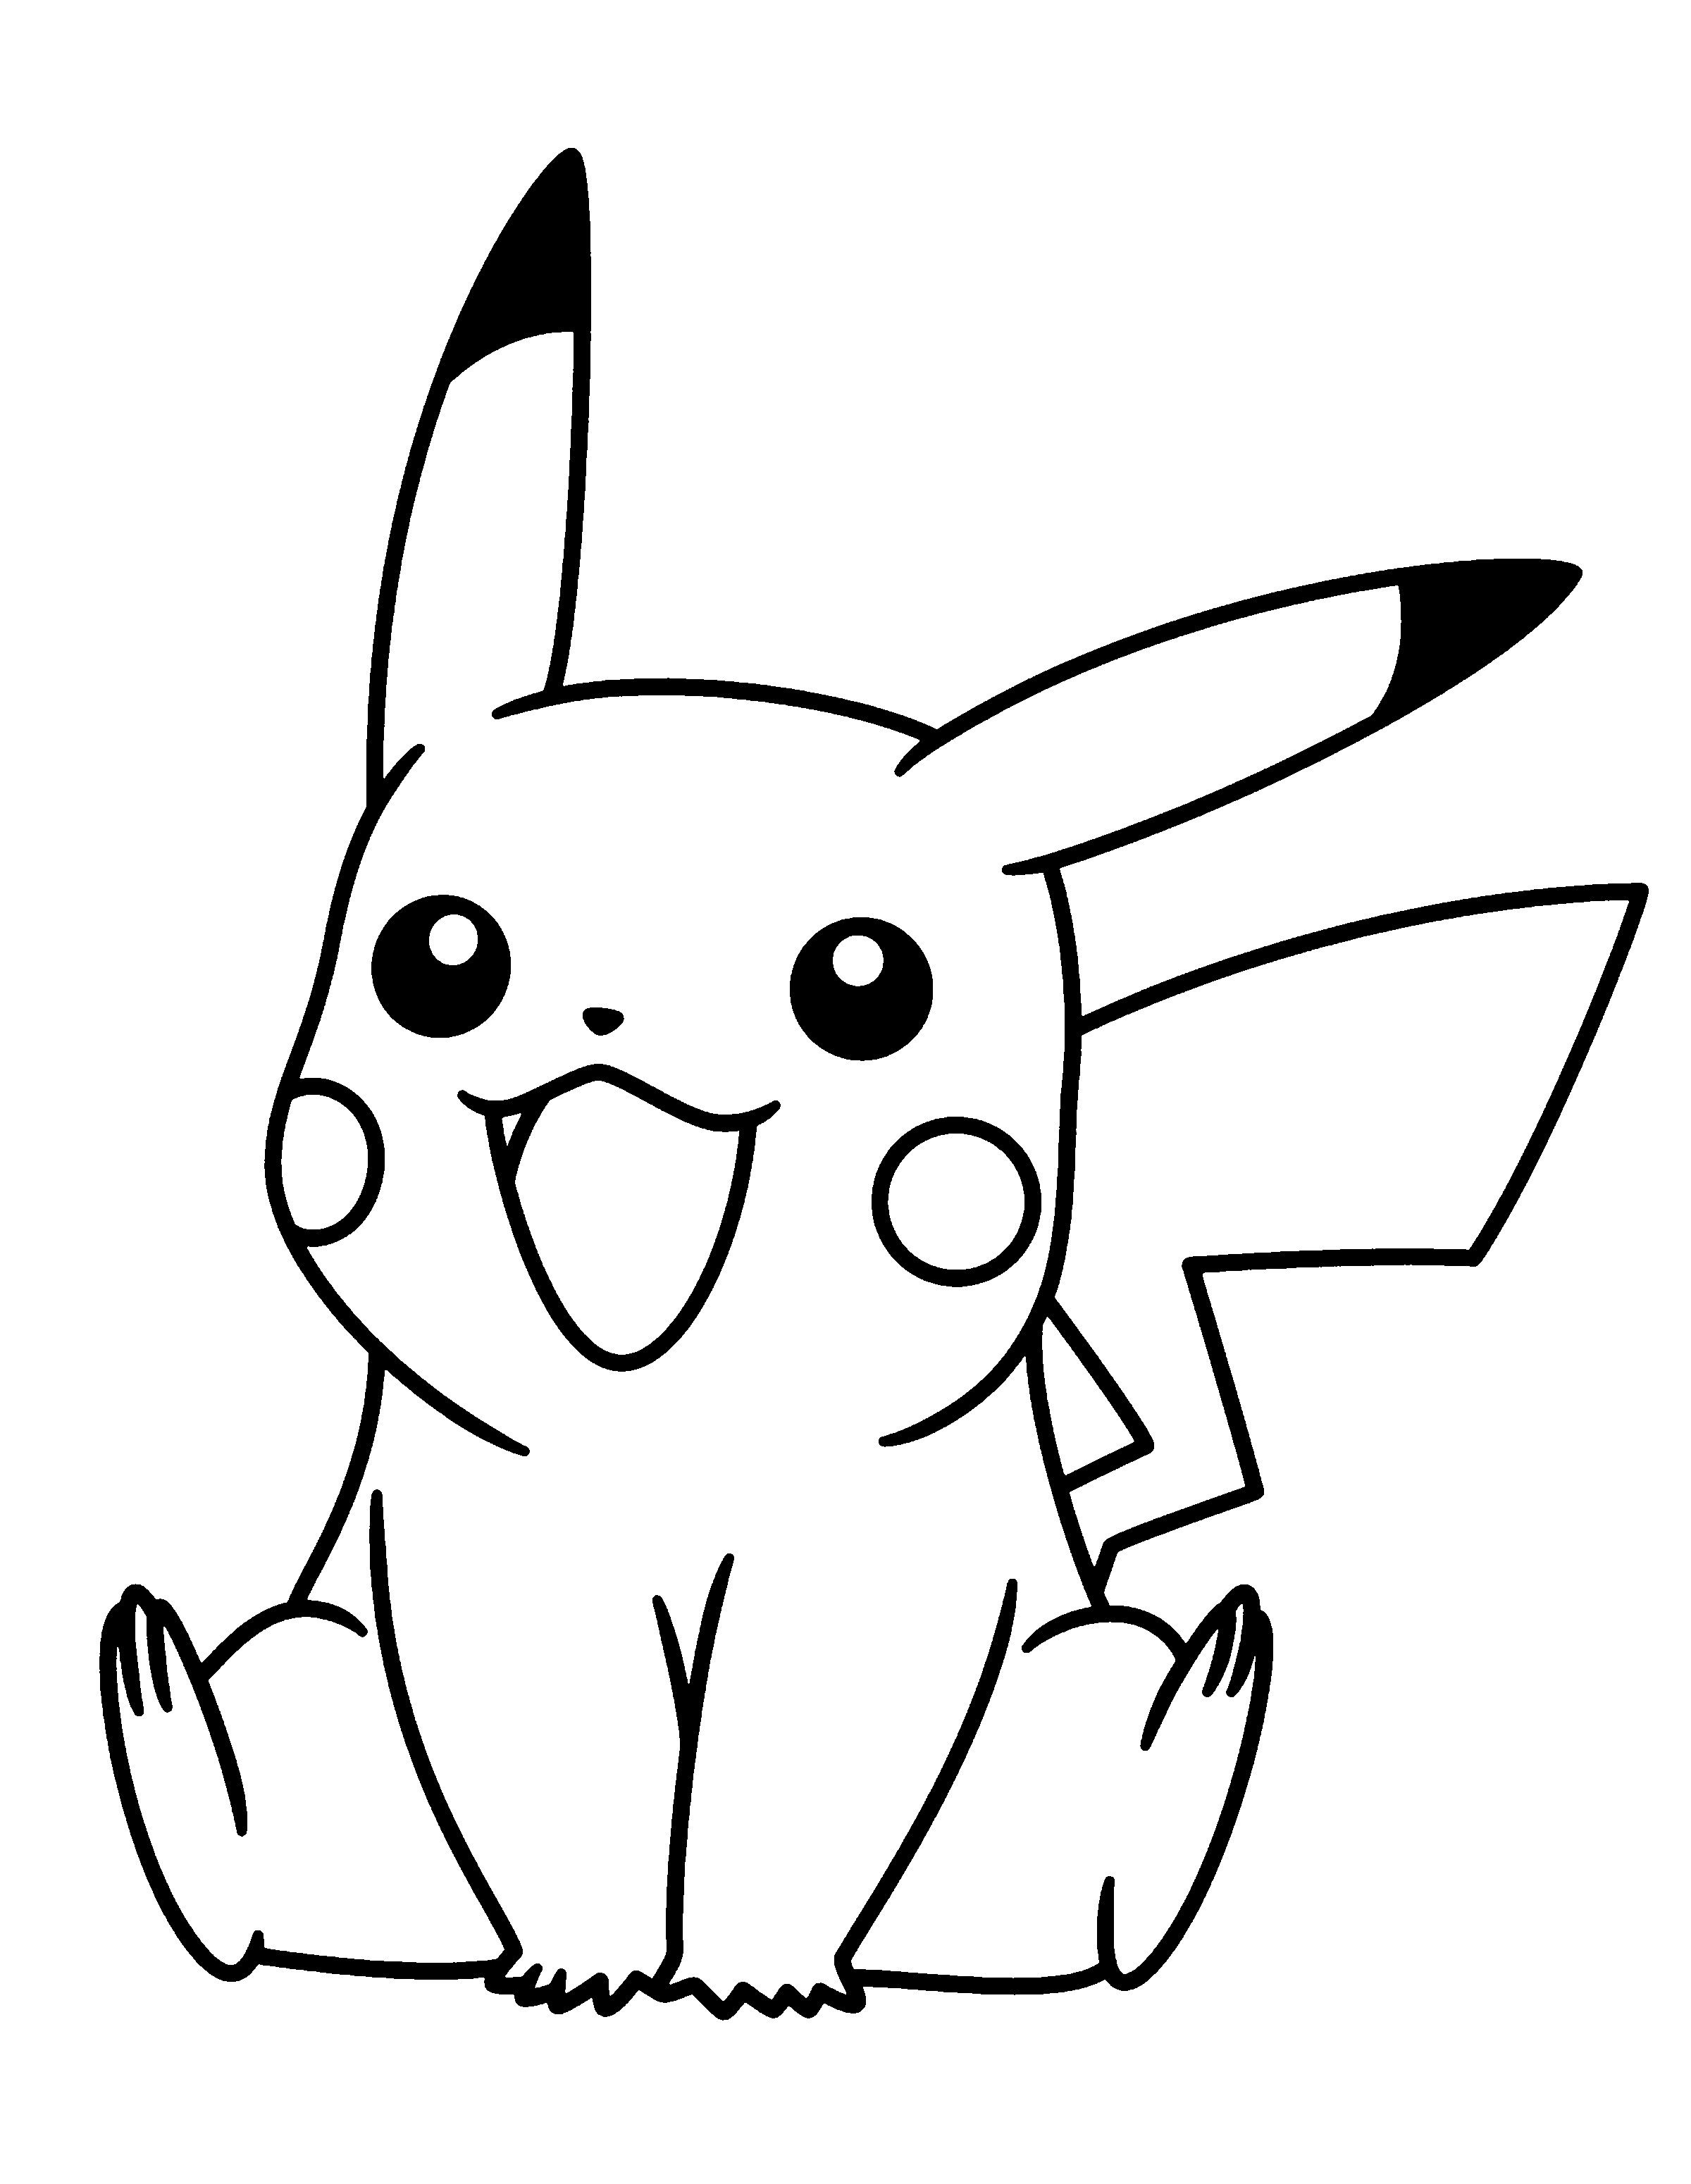 Pikachu Coloring Page Pdf From The Thousand Pictures On Line With Regards To Pikachu Coloring Pag Pikachu Coloring Page Kitty Coloring Pokemon Coloring Pages